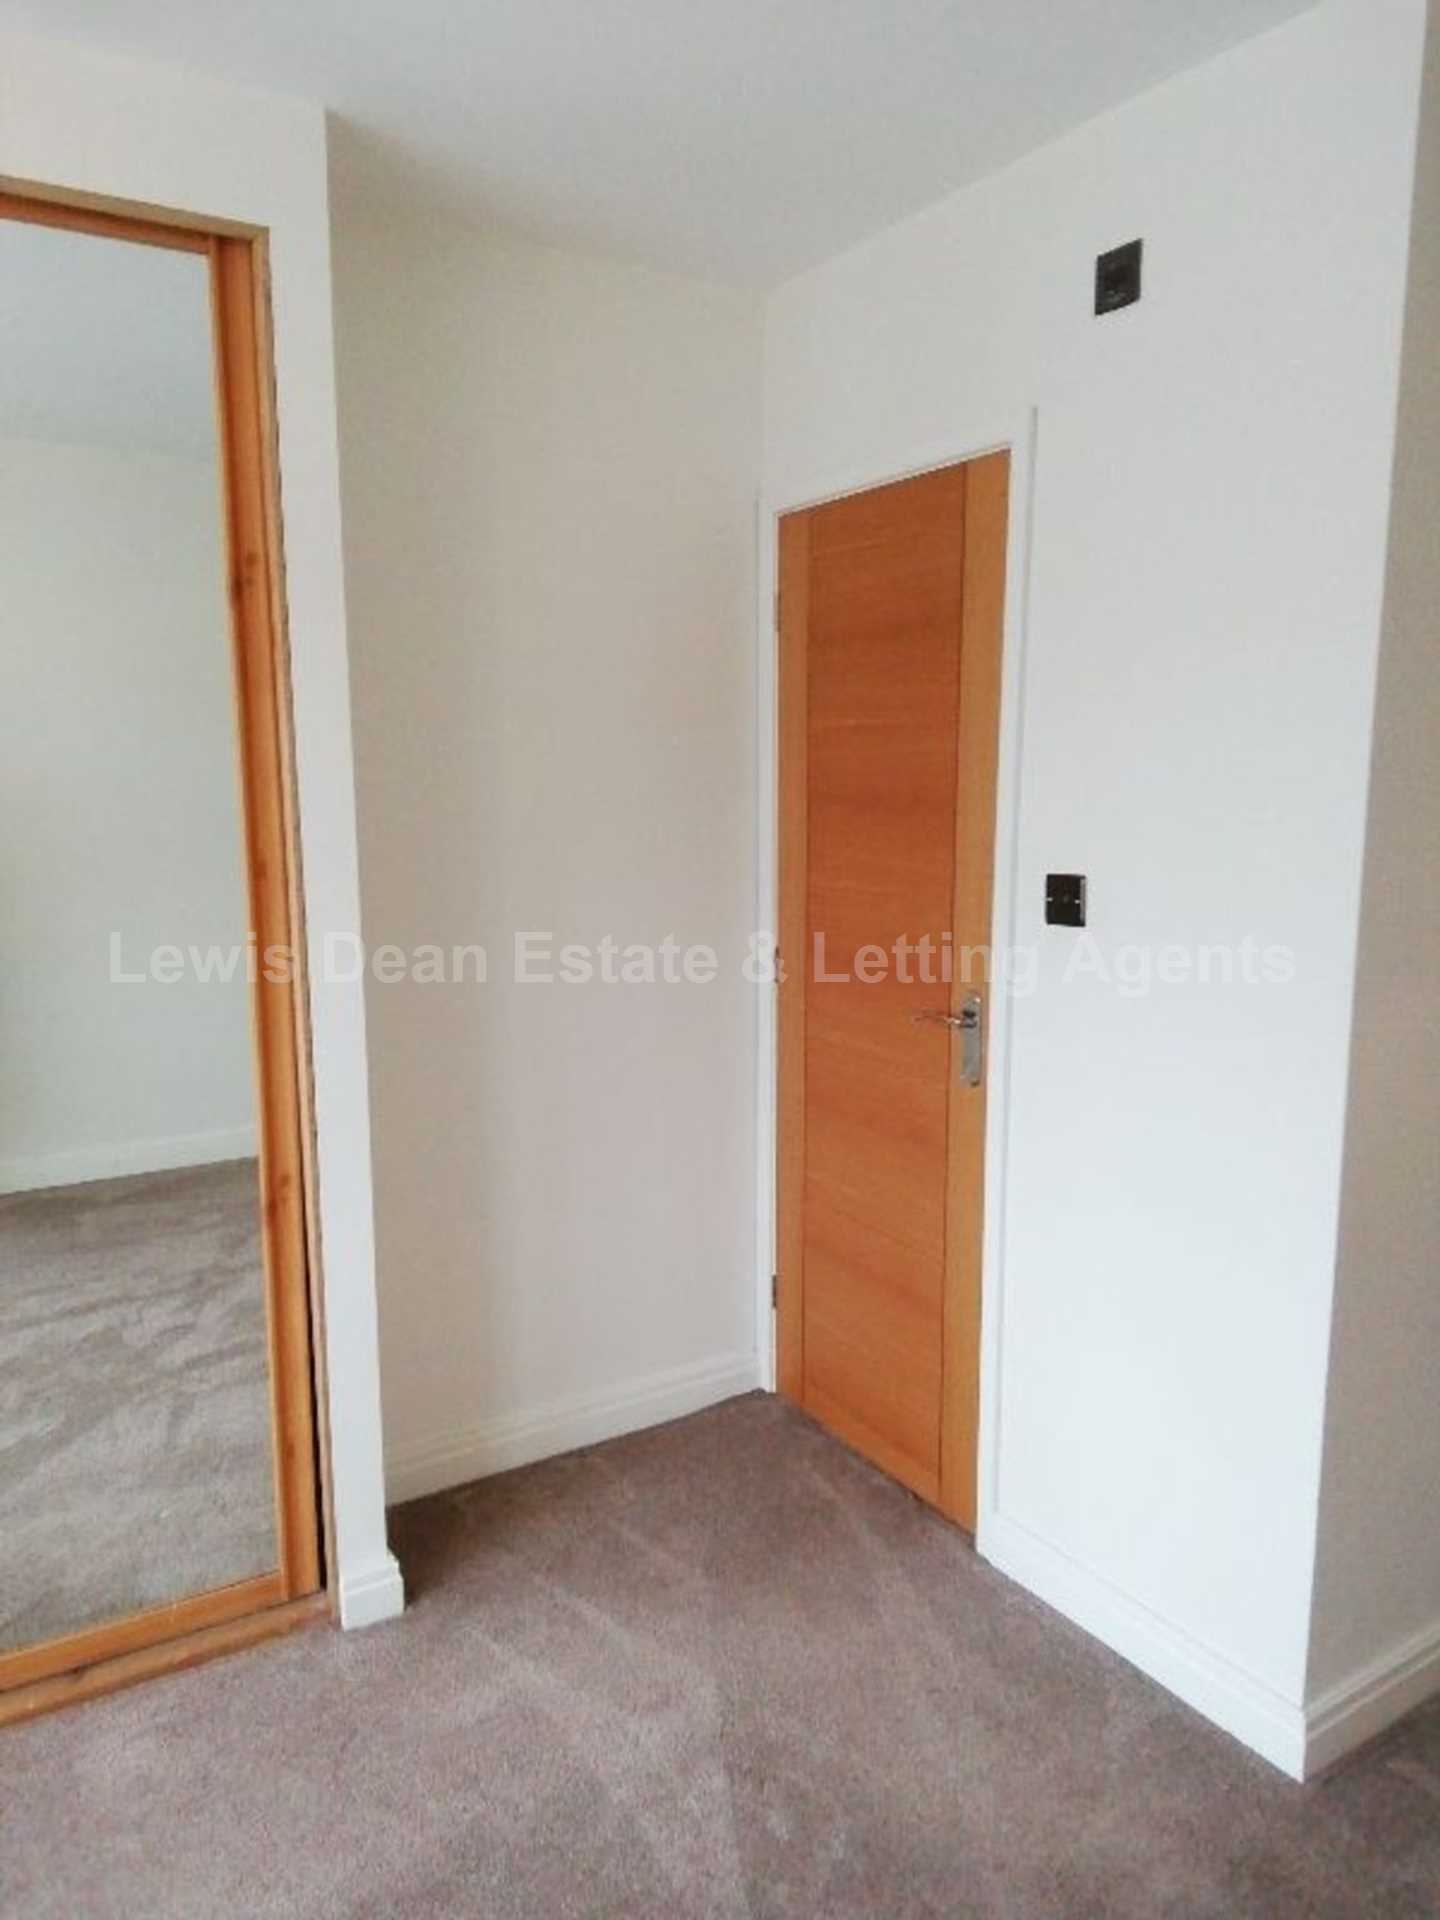 3 Bedroom Family home with Workshop/Home Office, Image 16